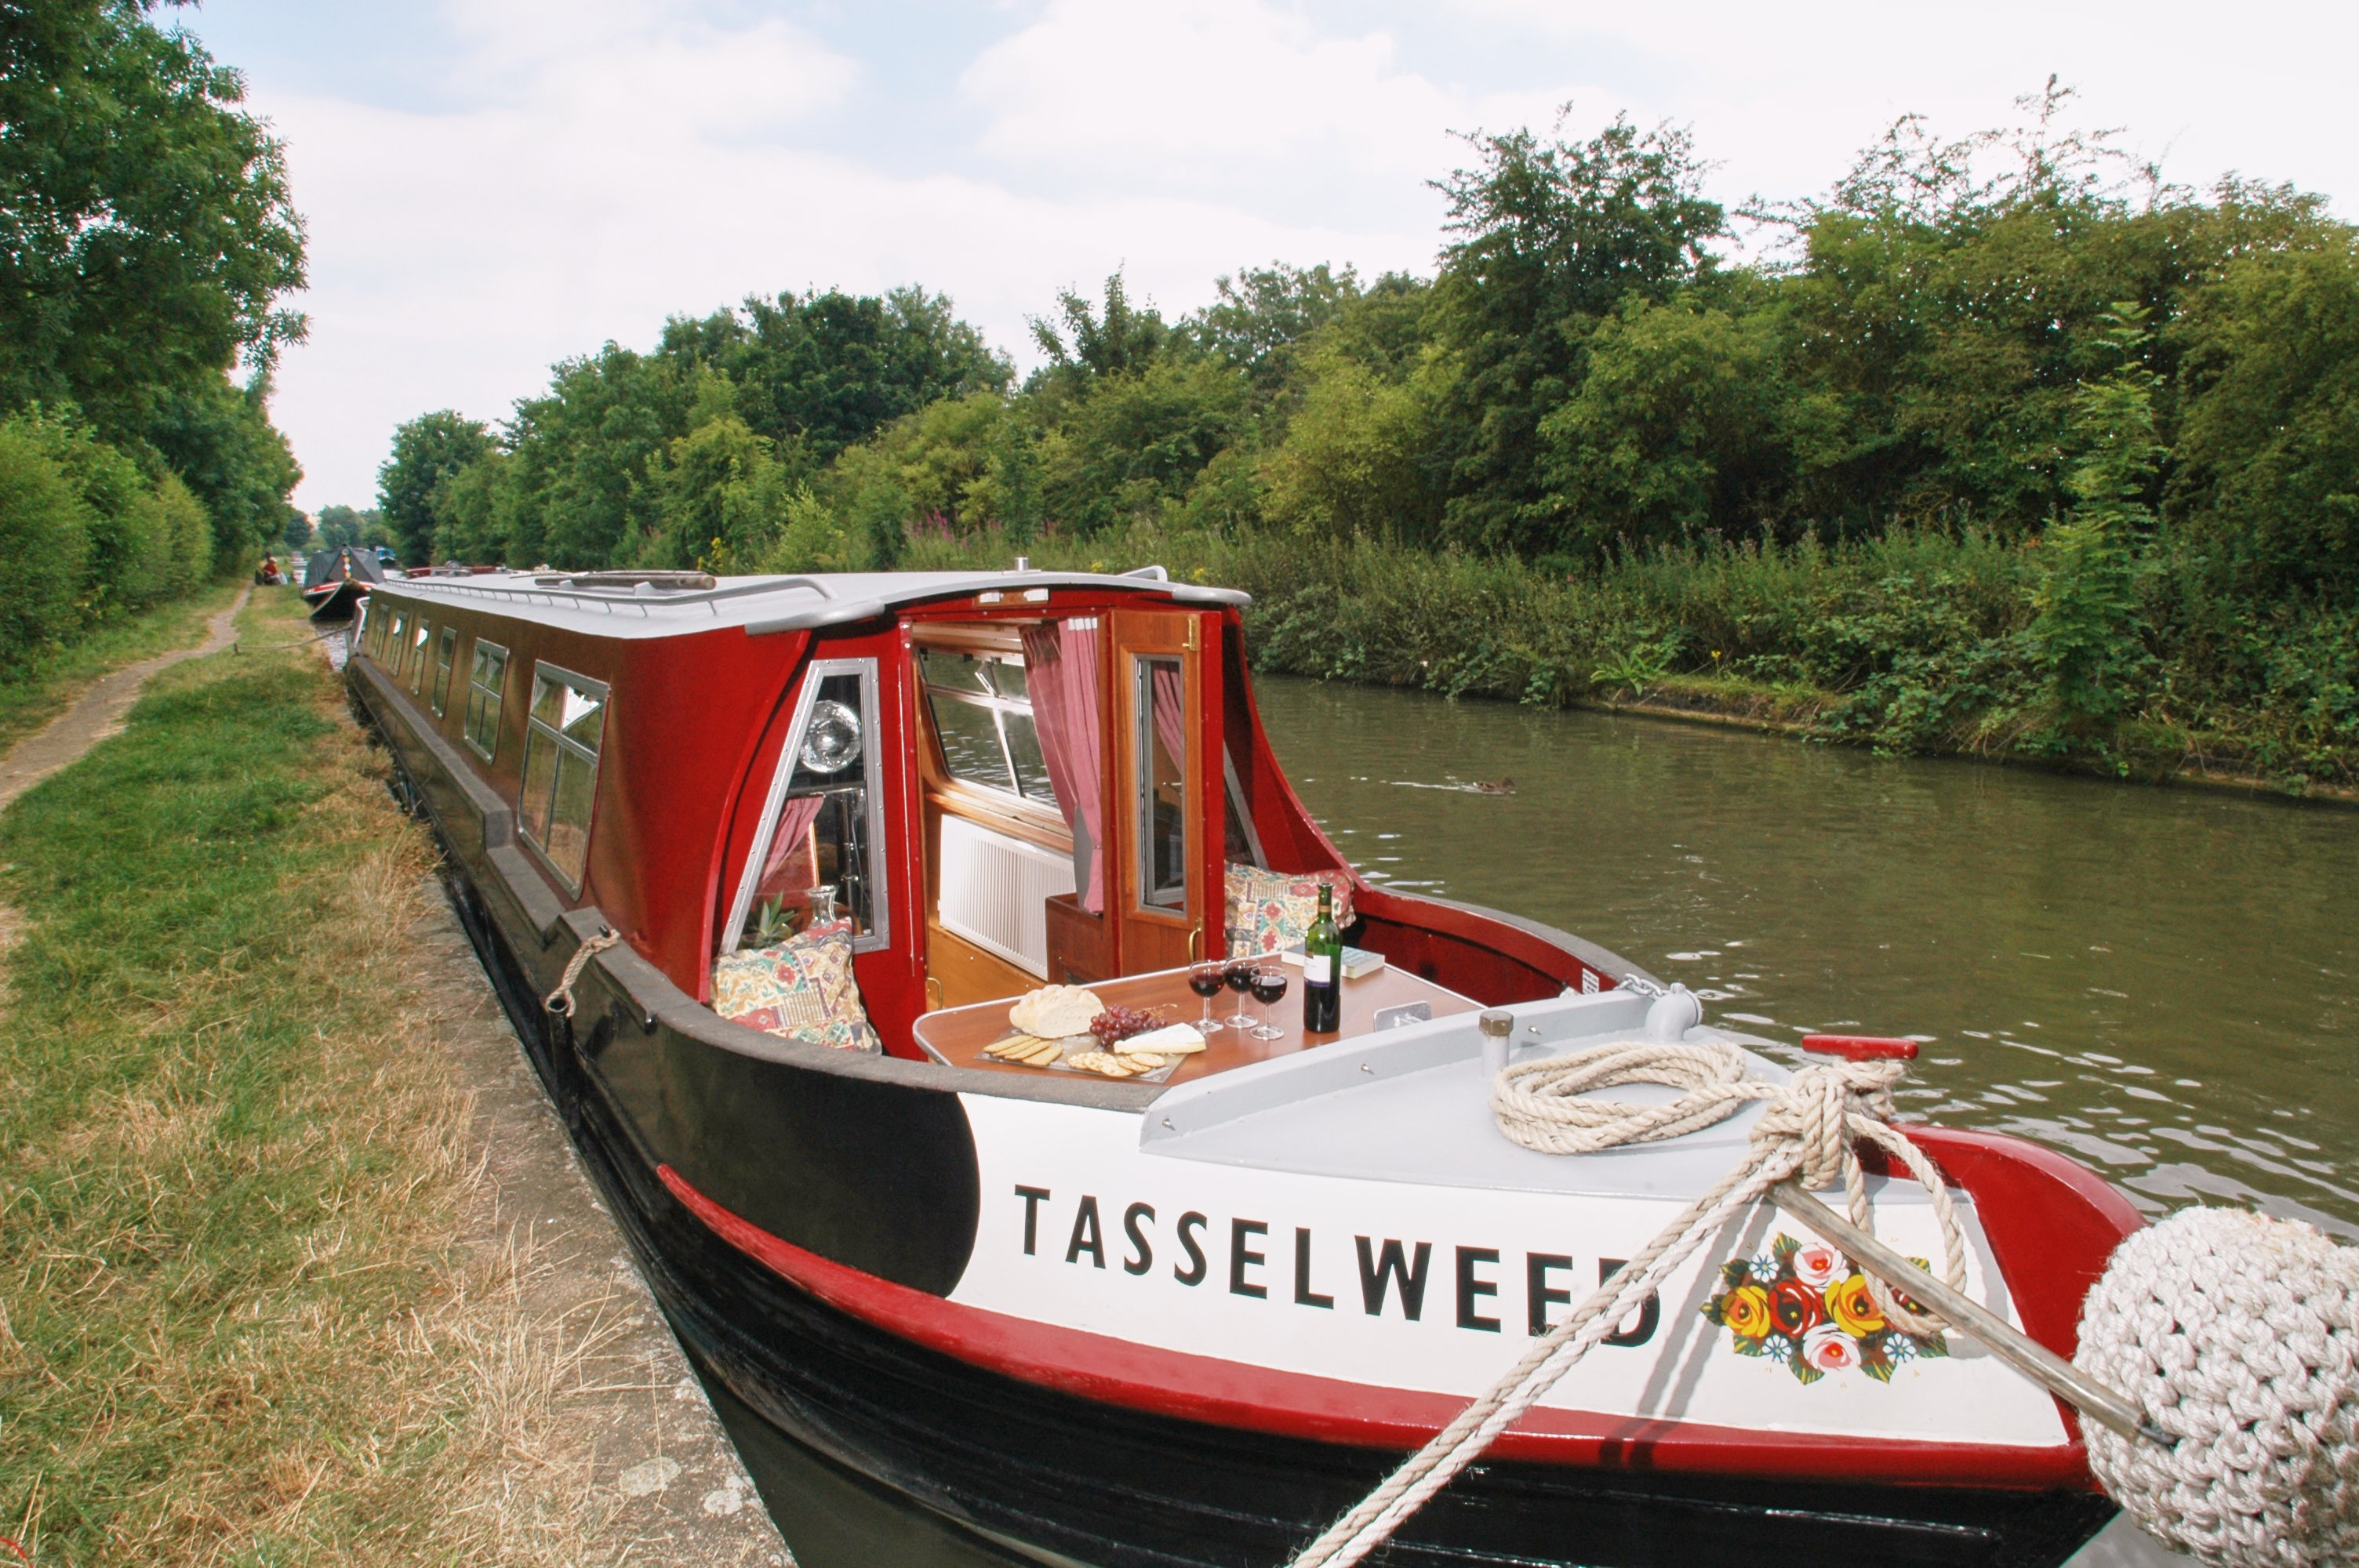 New boat Tasselweed from Weedon